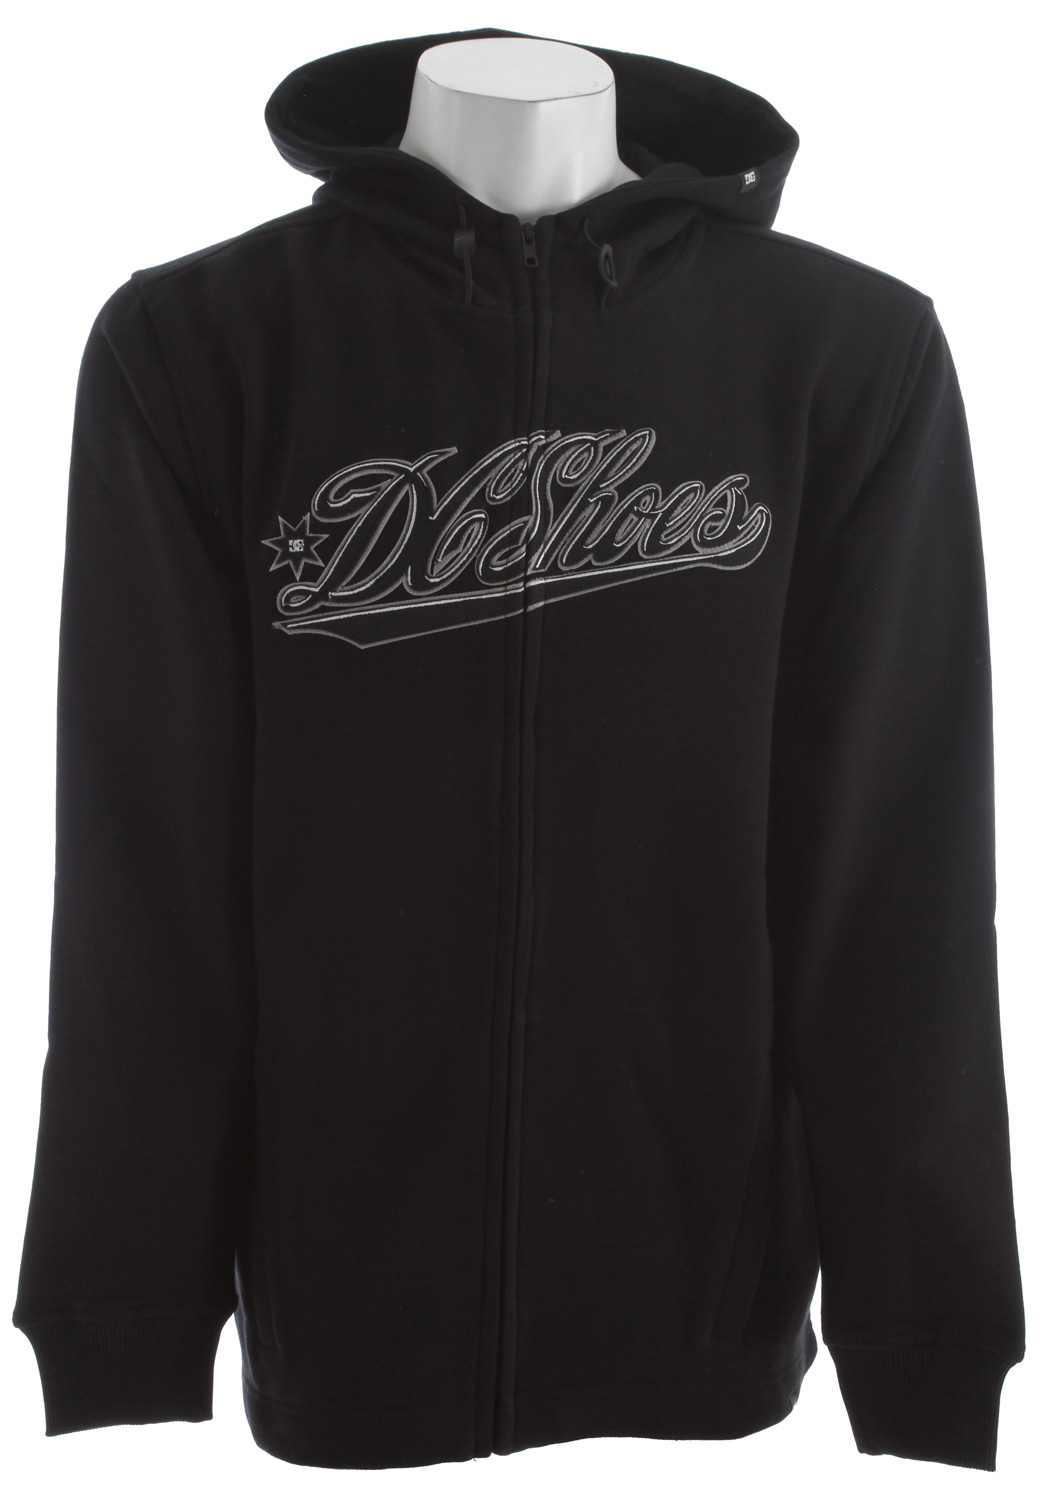 Skateboard DC's Riders fleece zipup hoodie will make you want to clean up your late model sedan and join a car club.* Fleece * Logo, Graphic * Hooded * Full Zip * Regular Fit * 2 Exterior Front Pockets * Midweight Insulation - $32.95